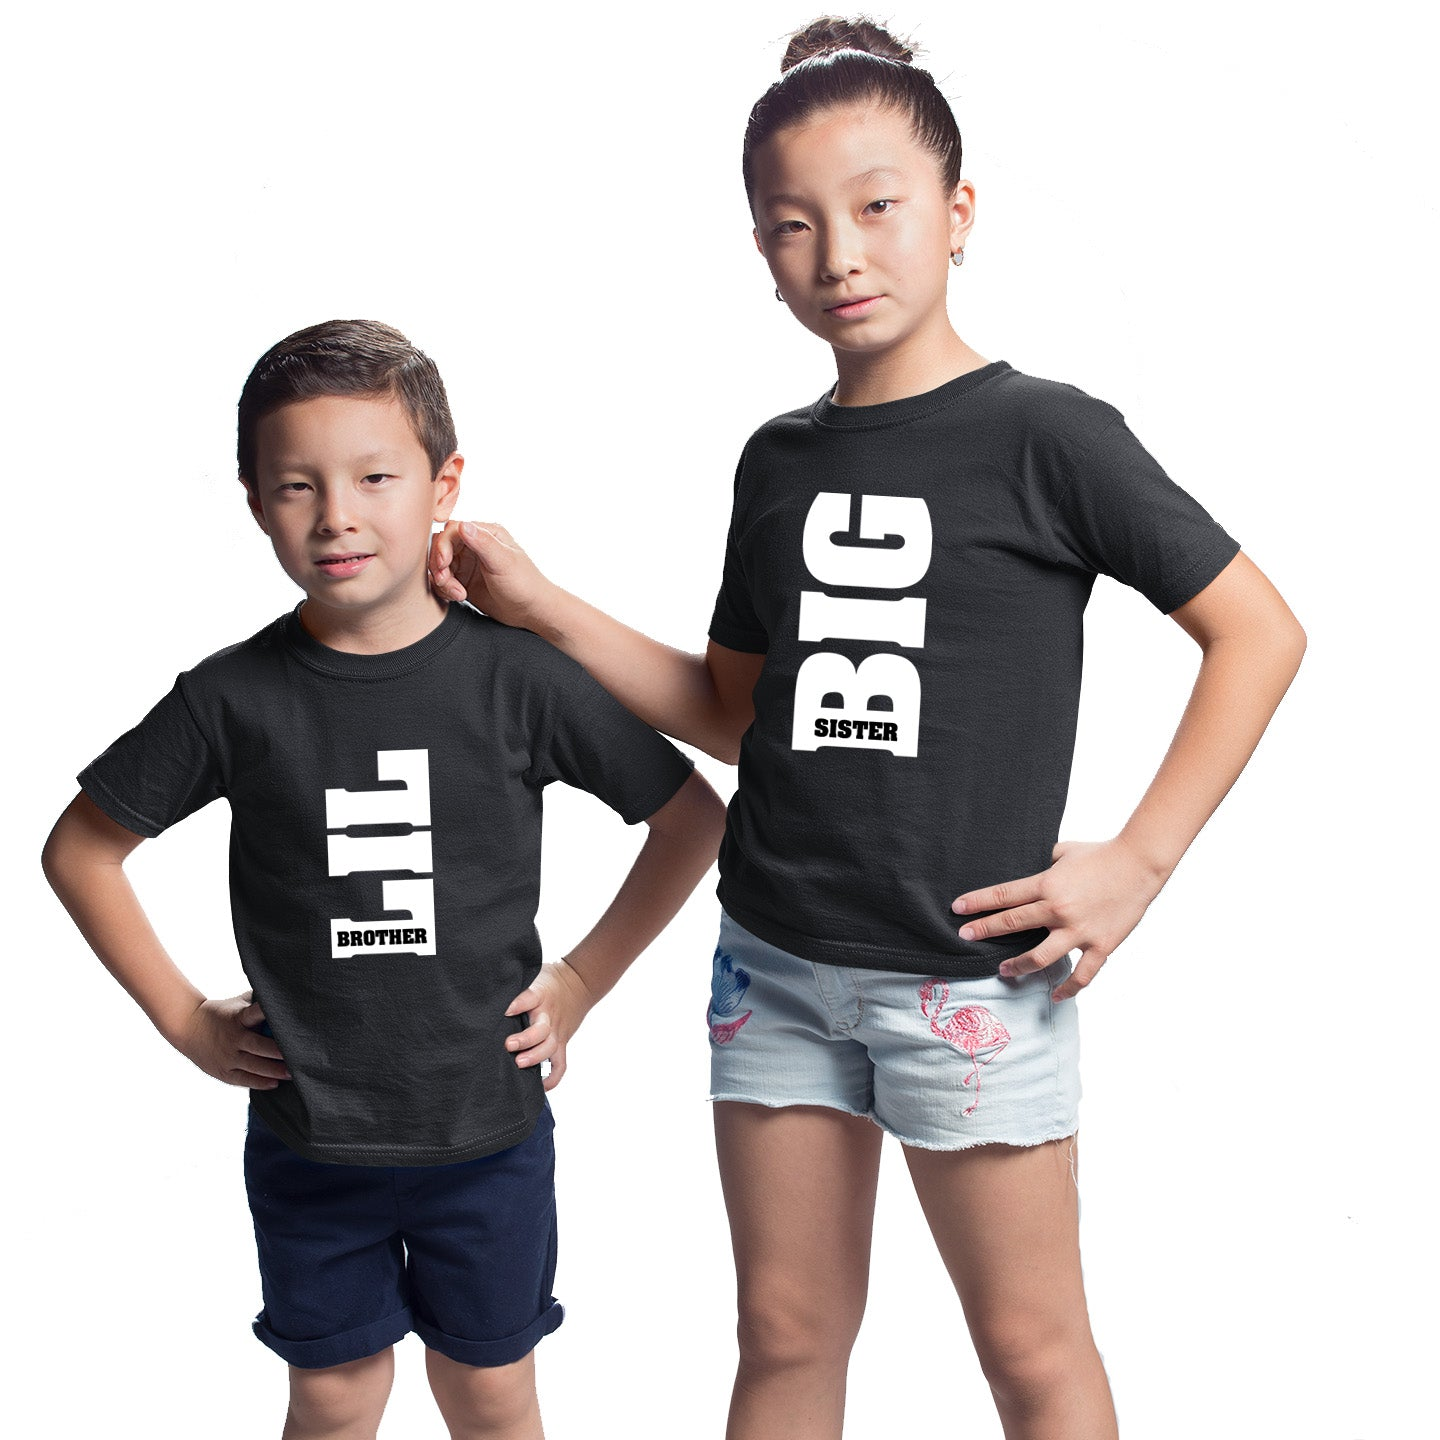 Sprinklecart Matching Big Sis Lil Bro Printed Sibling T Shirts | Cotton Black T Shirts